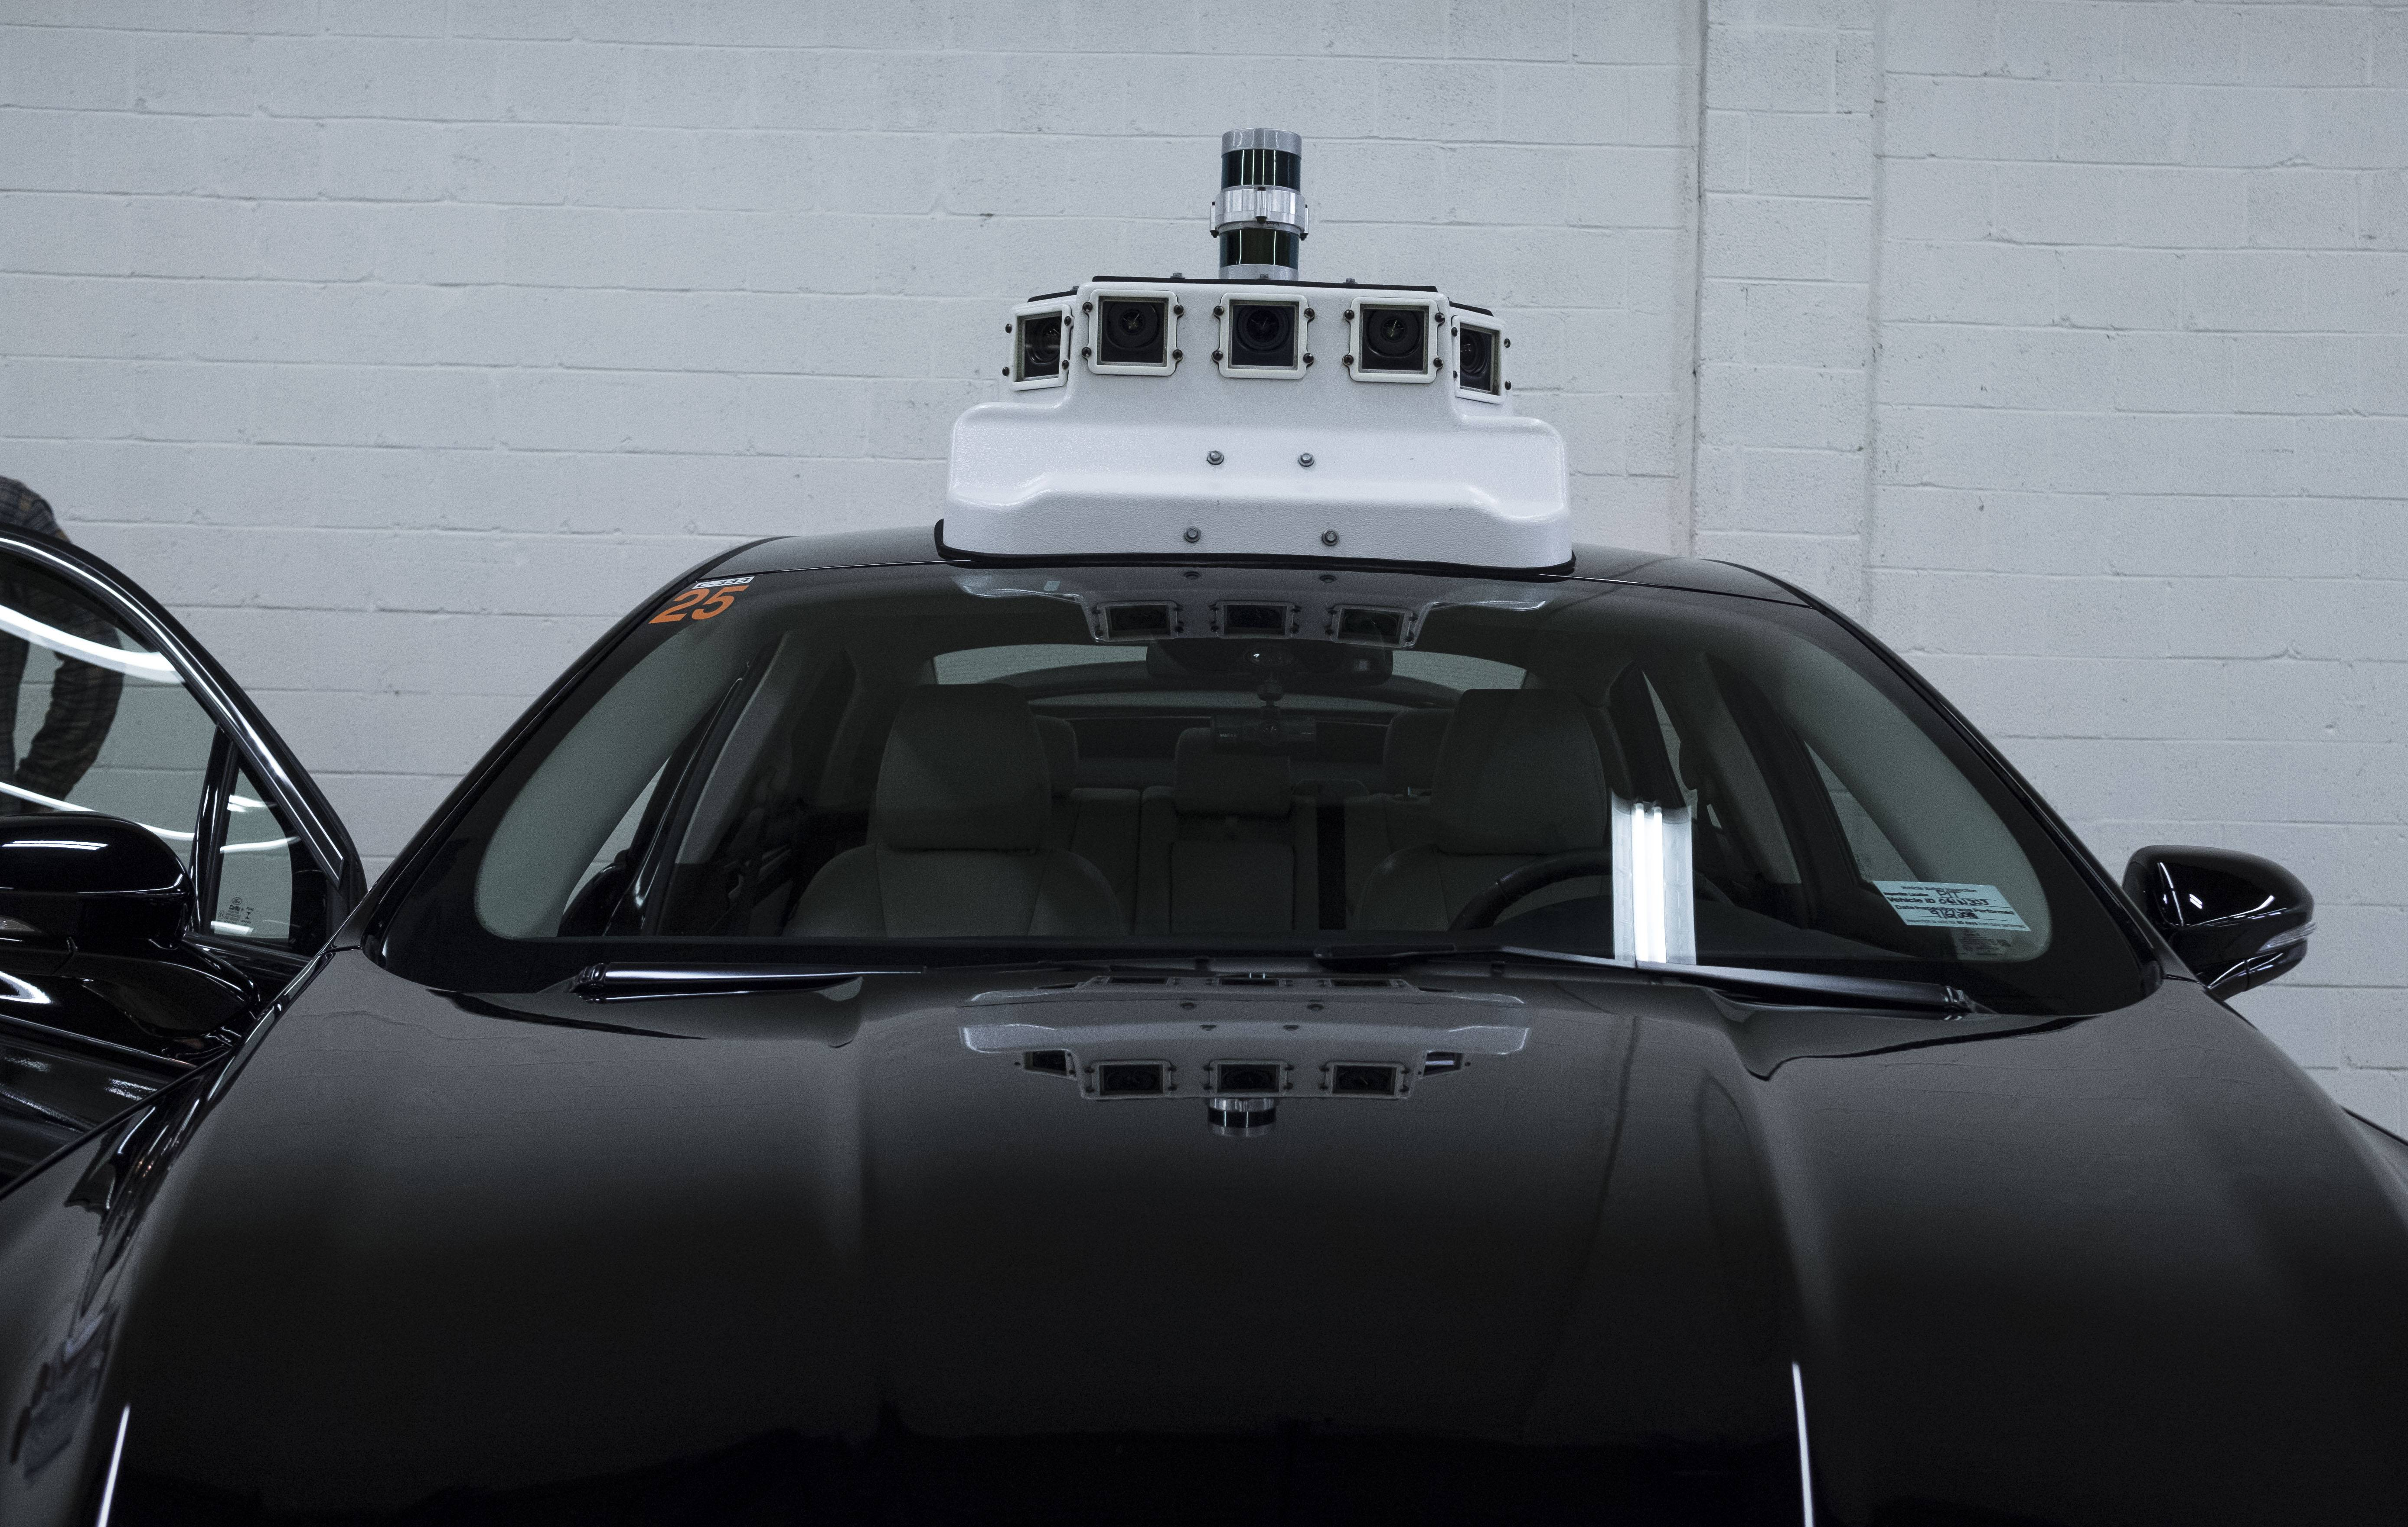 A Ford vehicle that will eventually be made into a self-driving car is outfitted with cameras at the Ford terminal in Washington, D.C.